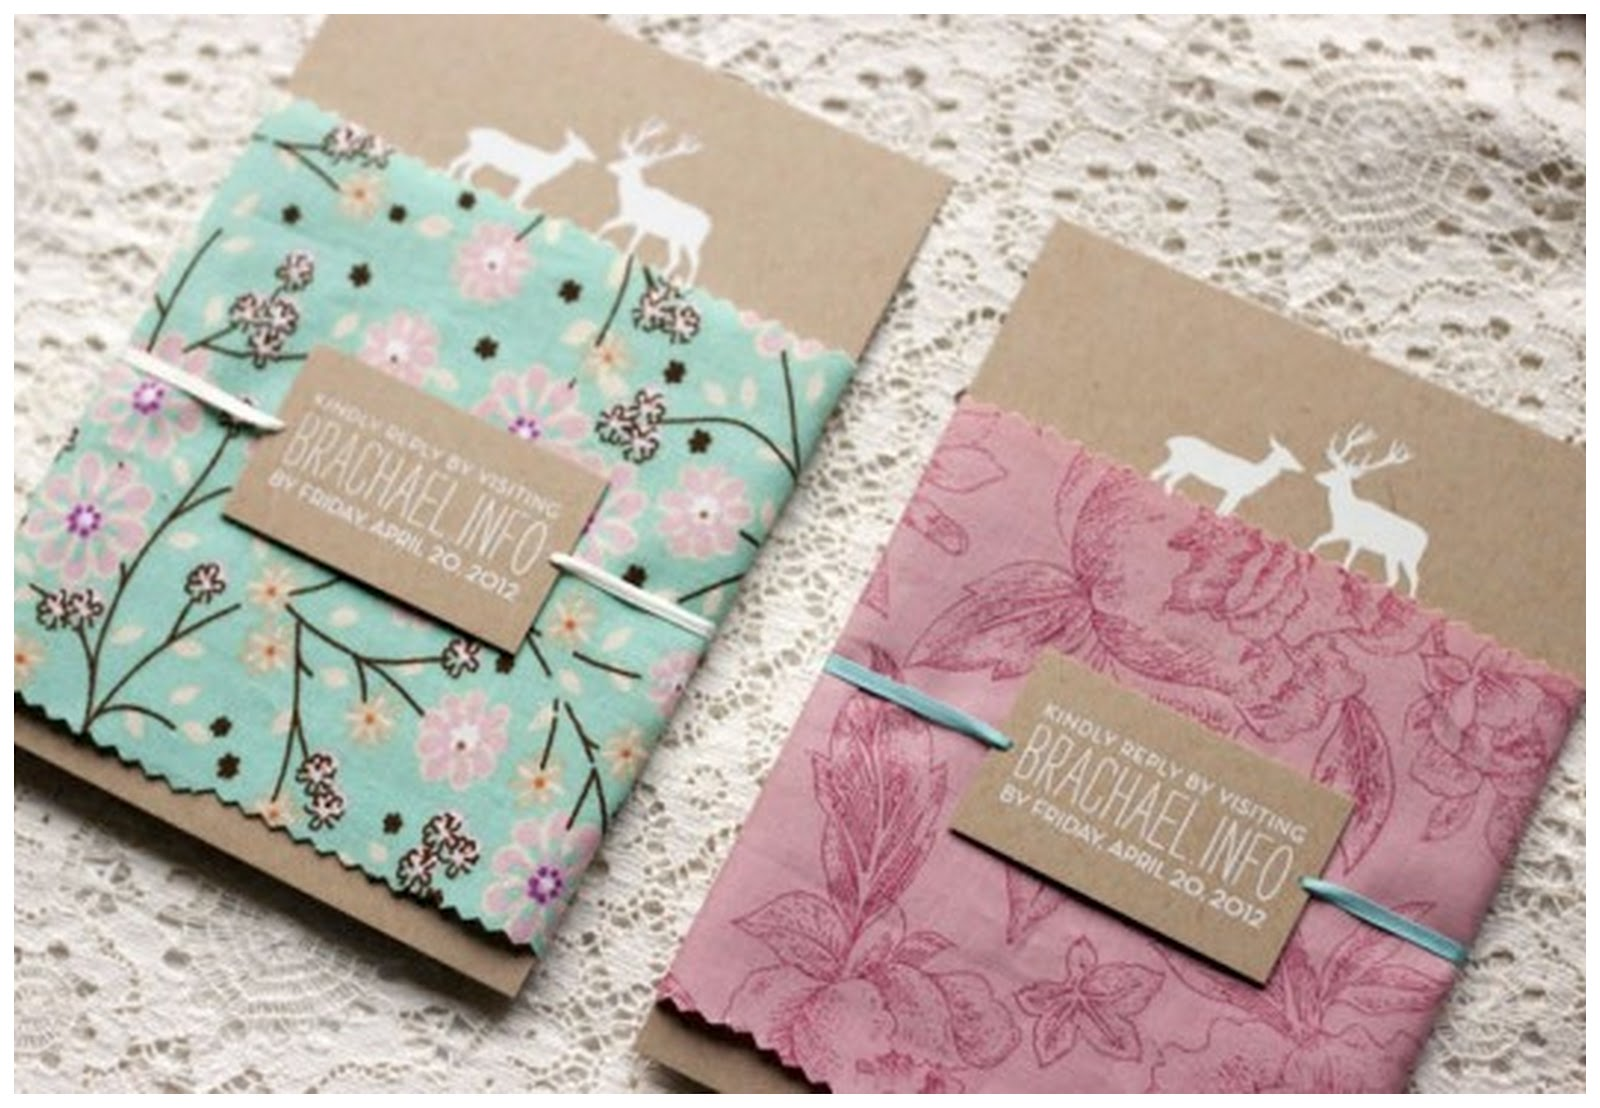 Paper For Wedding Invitation: How To Make Your Wedding Stationery Stand Out